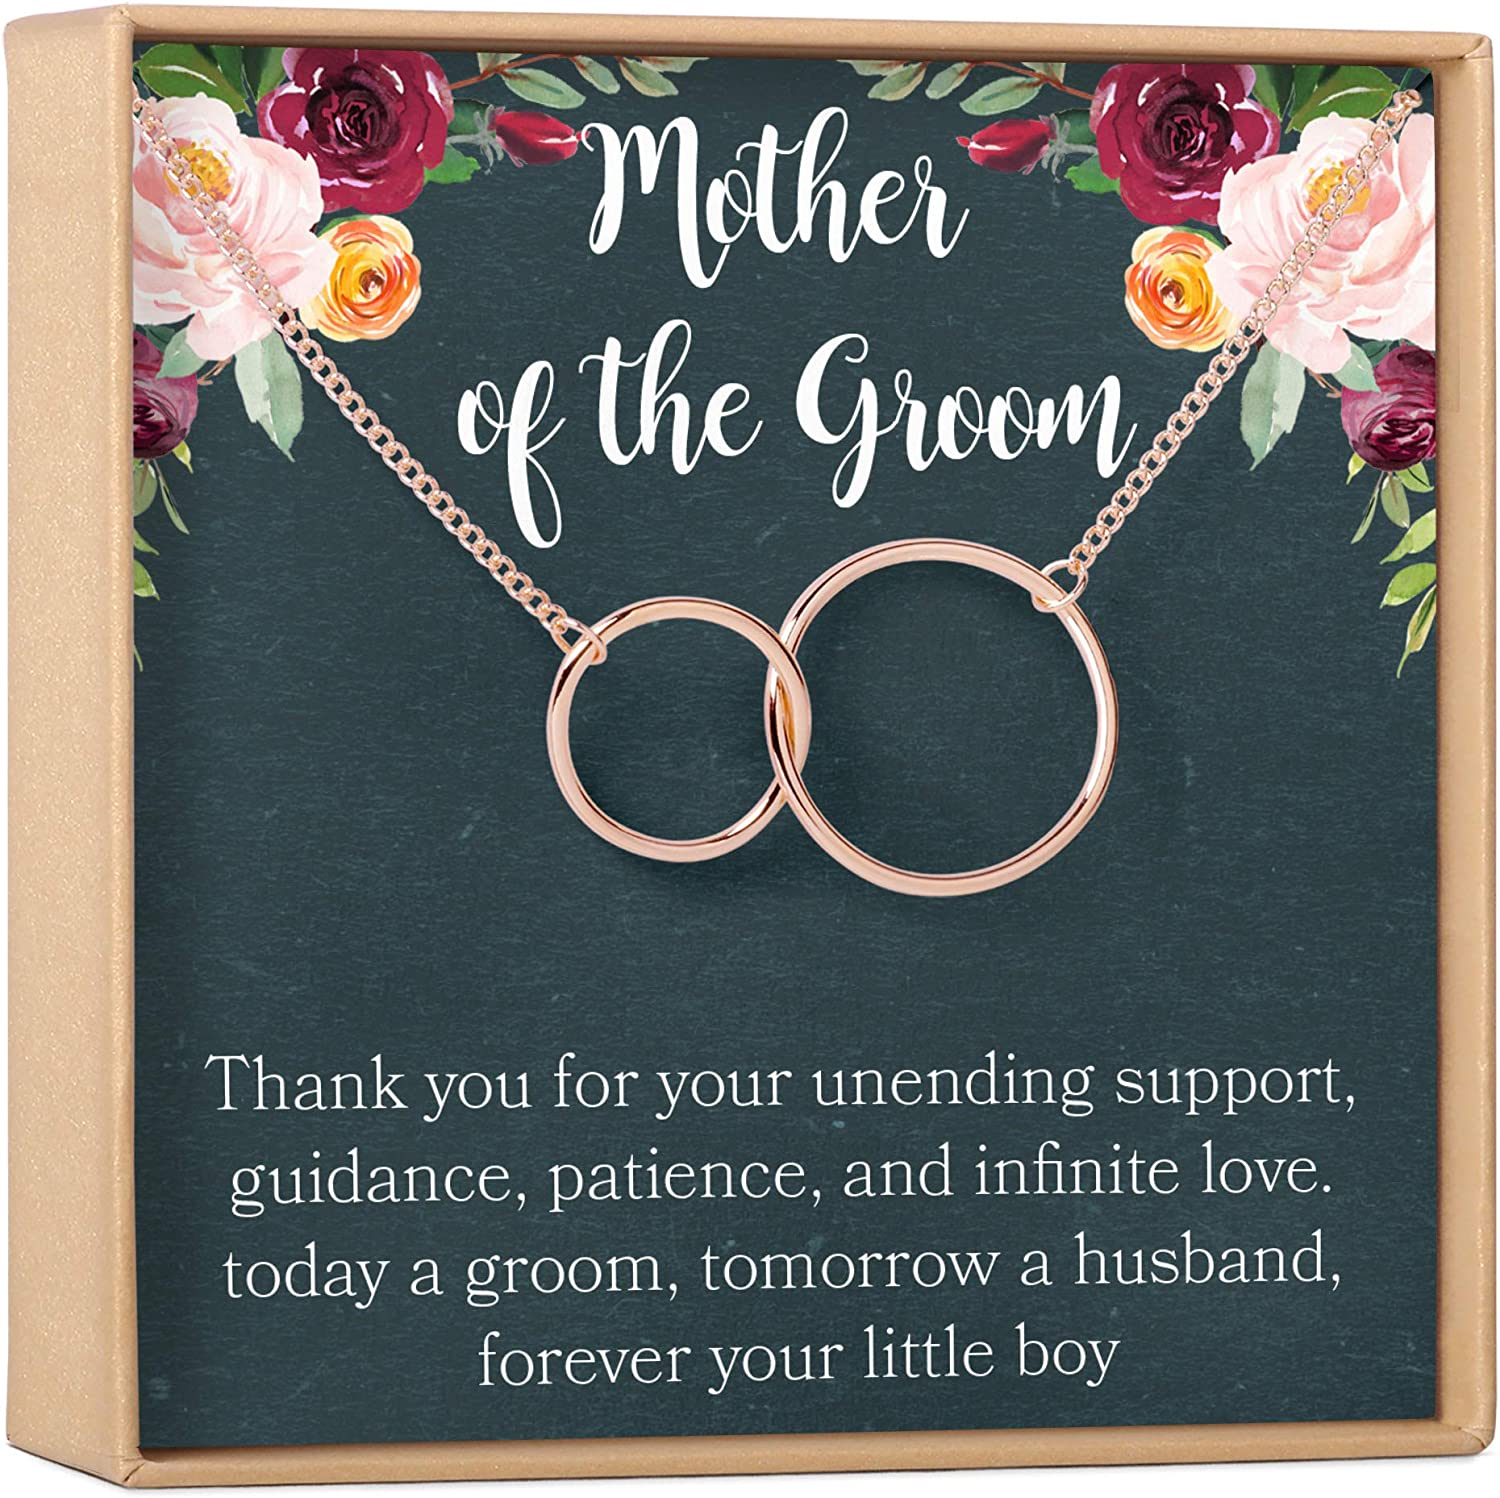 Wedding Gift Parents Frame Parents Gift Bride Gift Rehearsal Dinner Gift Mother In Law Father In Law Mother of the Bride Gift